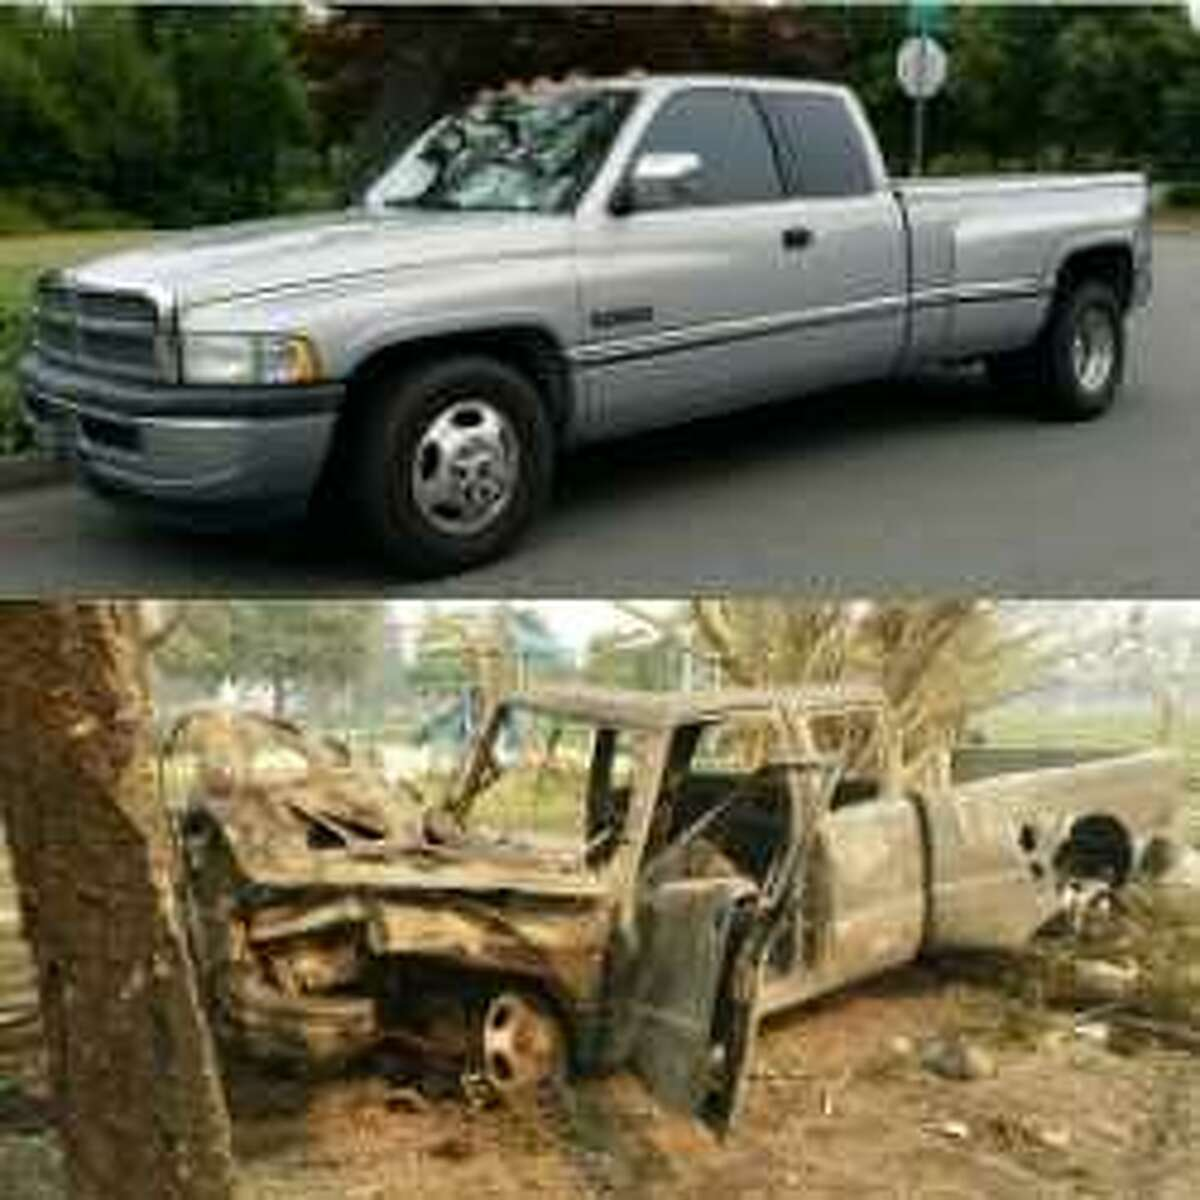 Scott Birdsall's 1997 Dodge D3500 Diesel was used for towing before it was destroyed in the Tubbs Fire, which tore through his Coffey Park neighborhood in October.